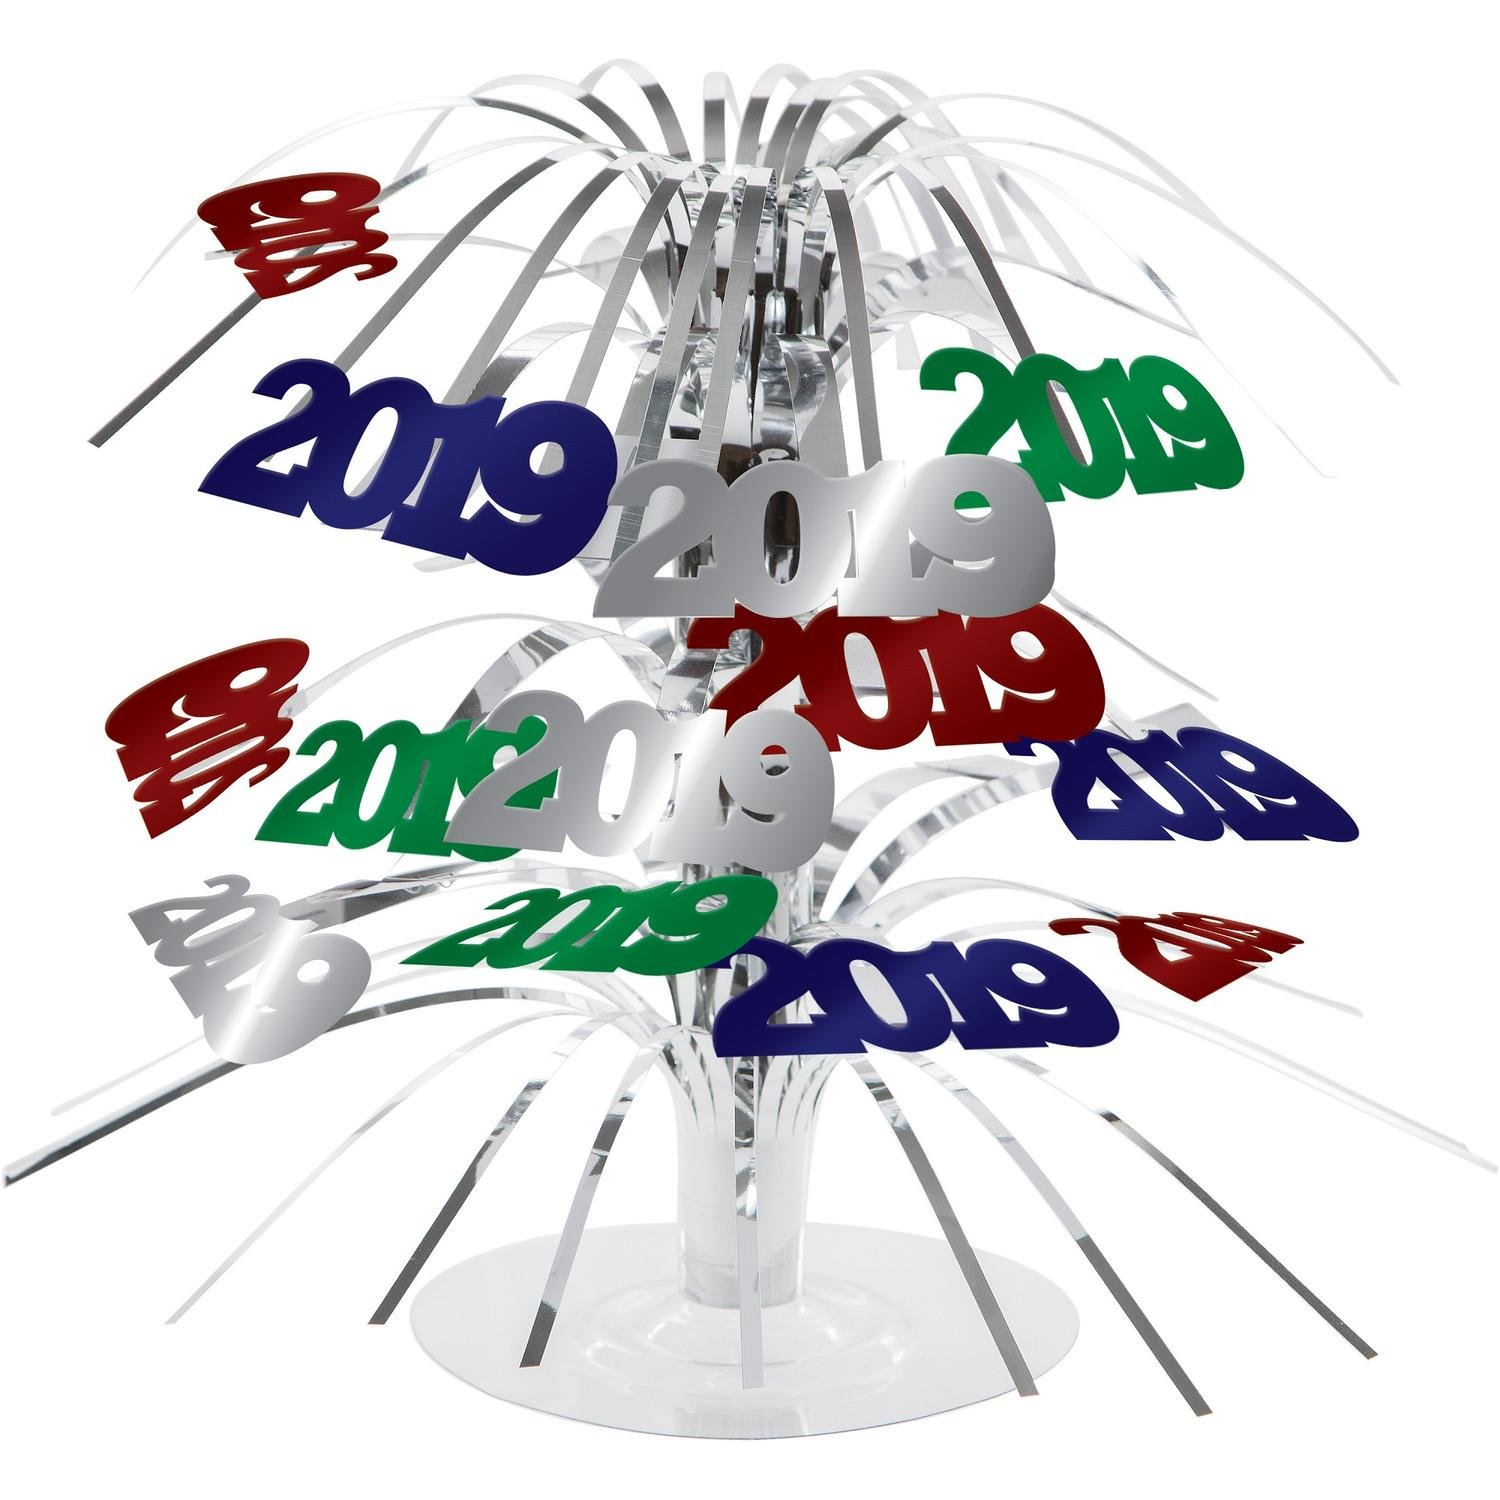 Pack of 12''2019'' Multicolored Metallic Cascade New Year's Centerpiece Table Decorations 18.75''